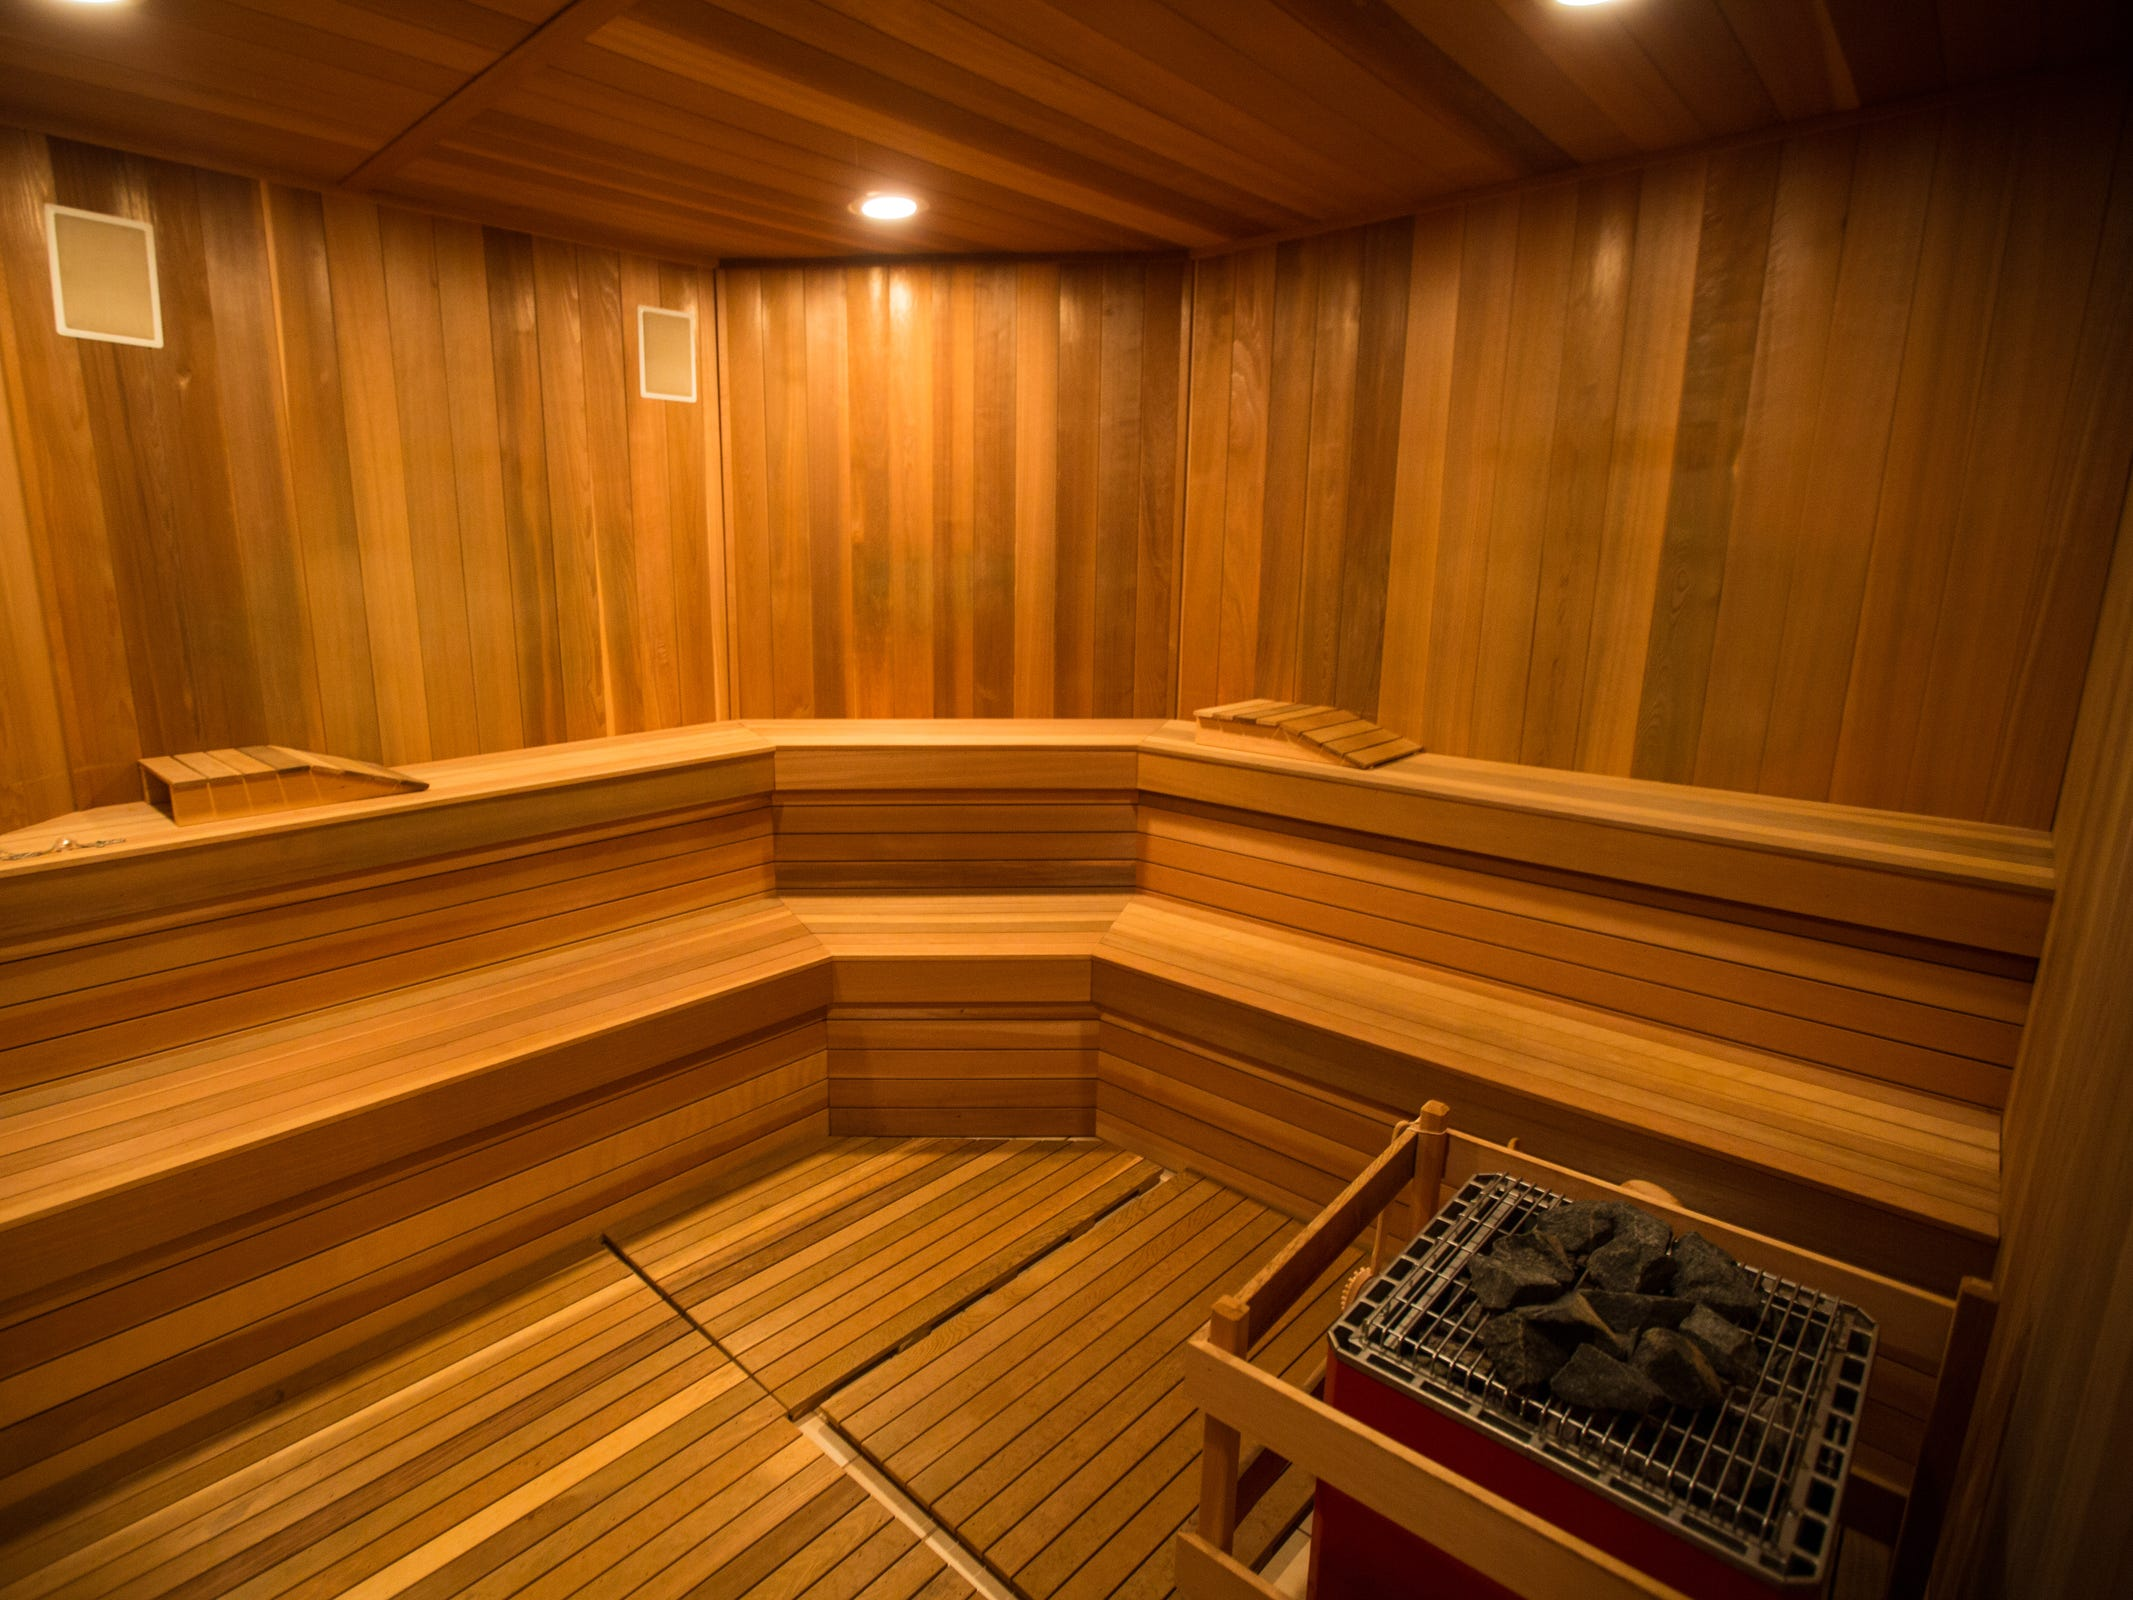 A cedar sauna in the home's lower level, adjacent the exercise space.